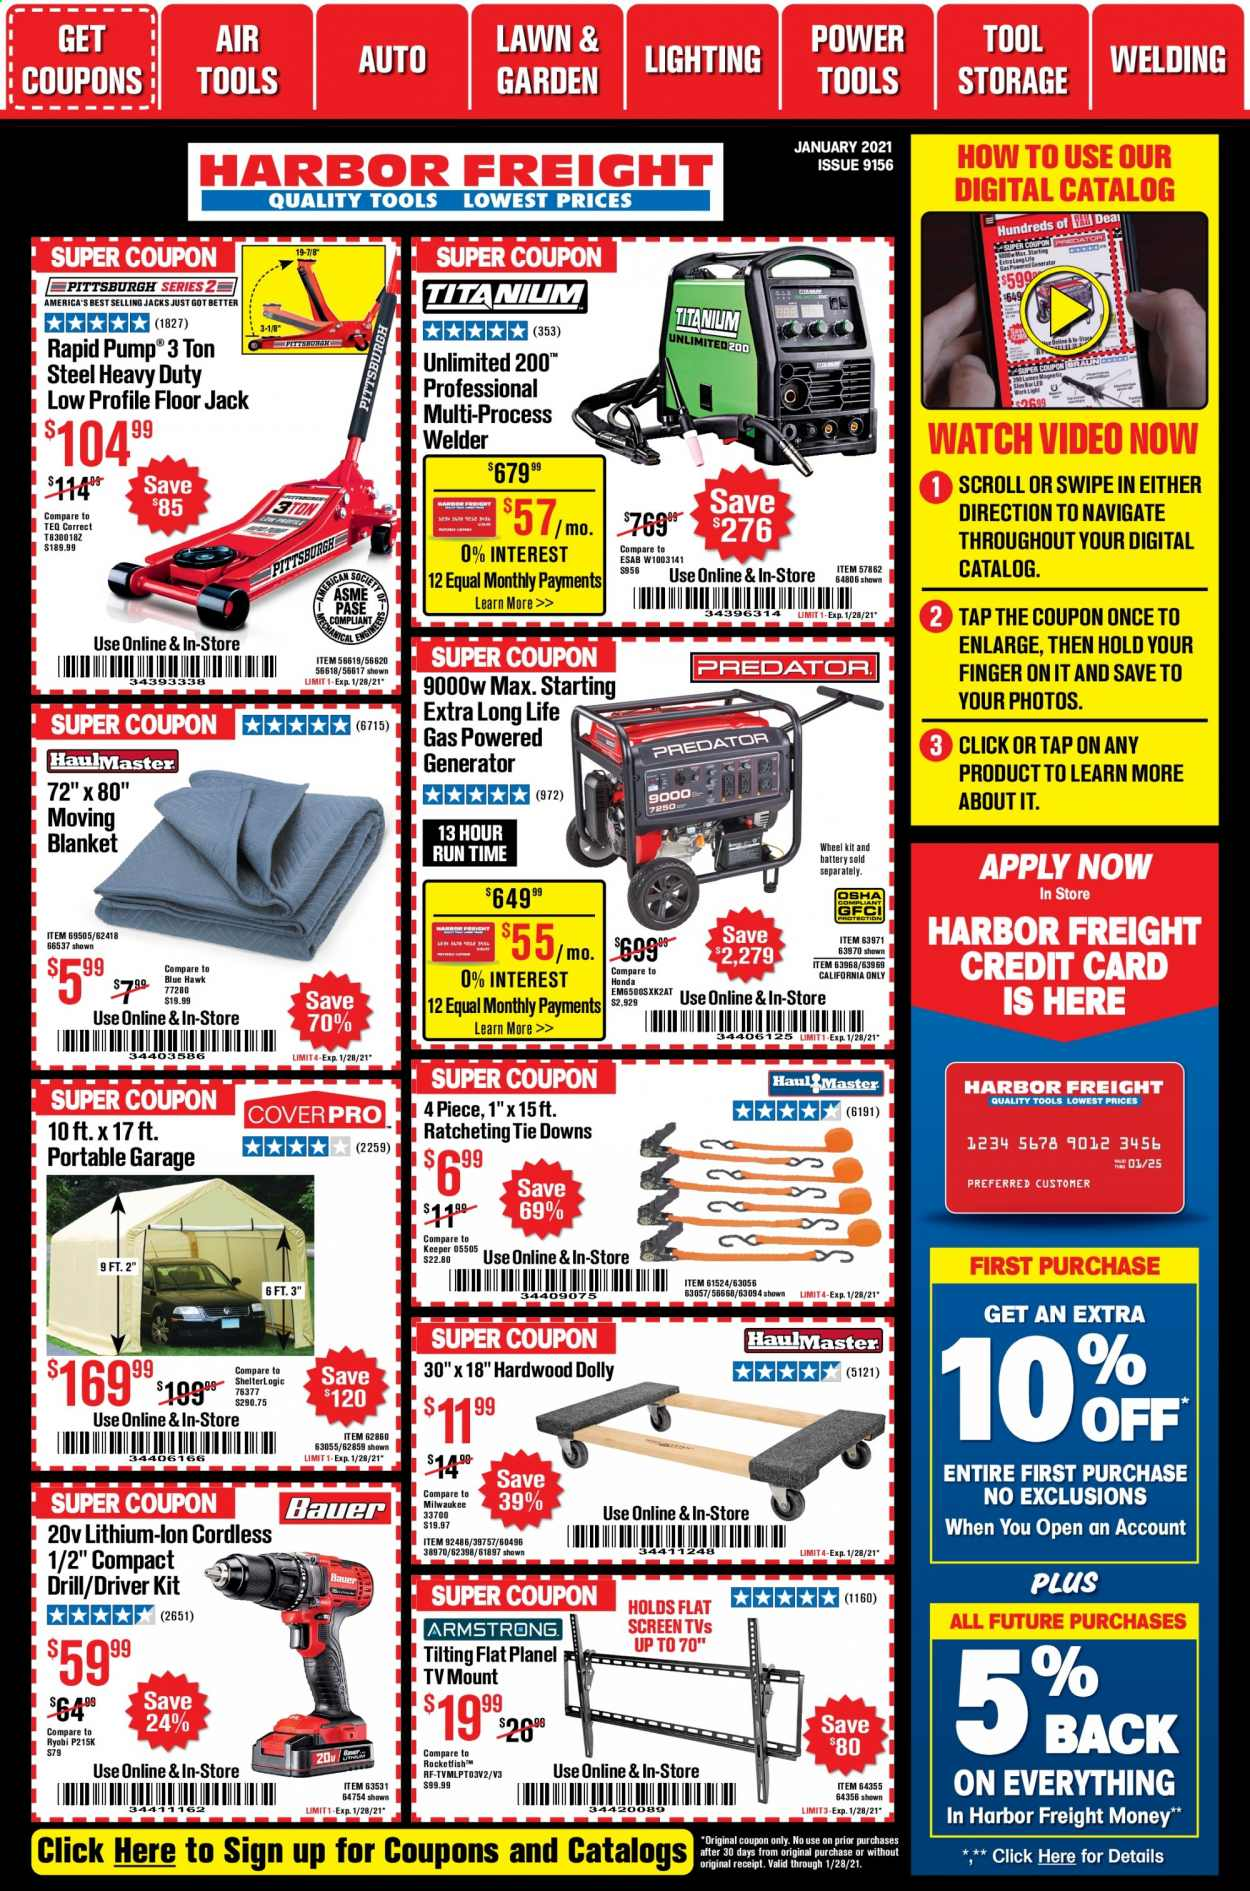 Harbor Freight Flyer - 01.01.2021 - 01.28.2021 - Sales products - battery, blanket, drill, floor jack, scroll, tie, watch, power tools, milwaukee, pump, generator, tools, heavy duty. Page 1.